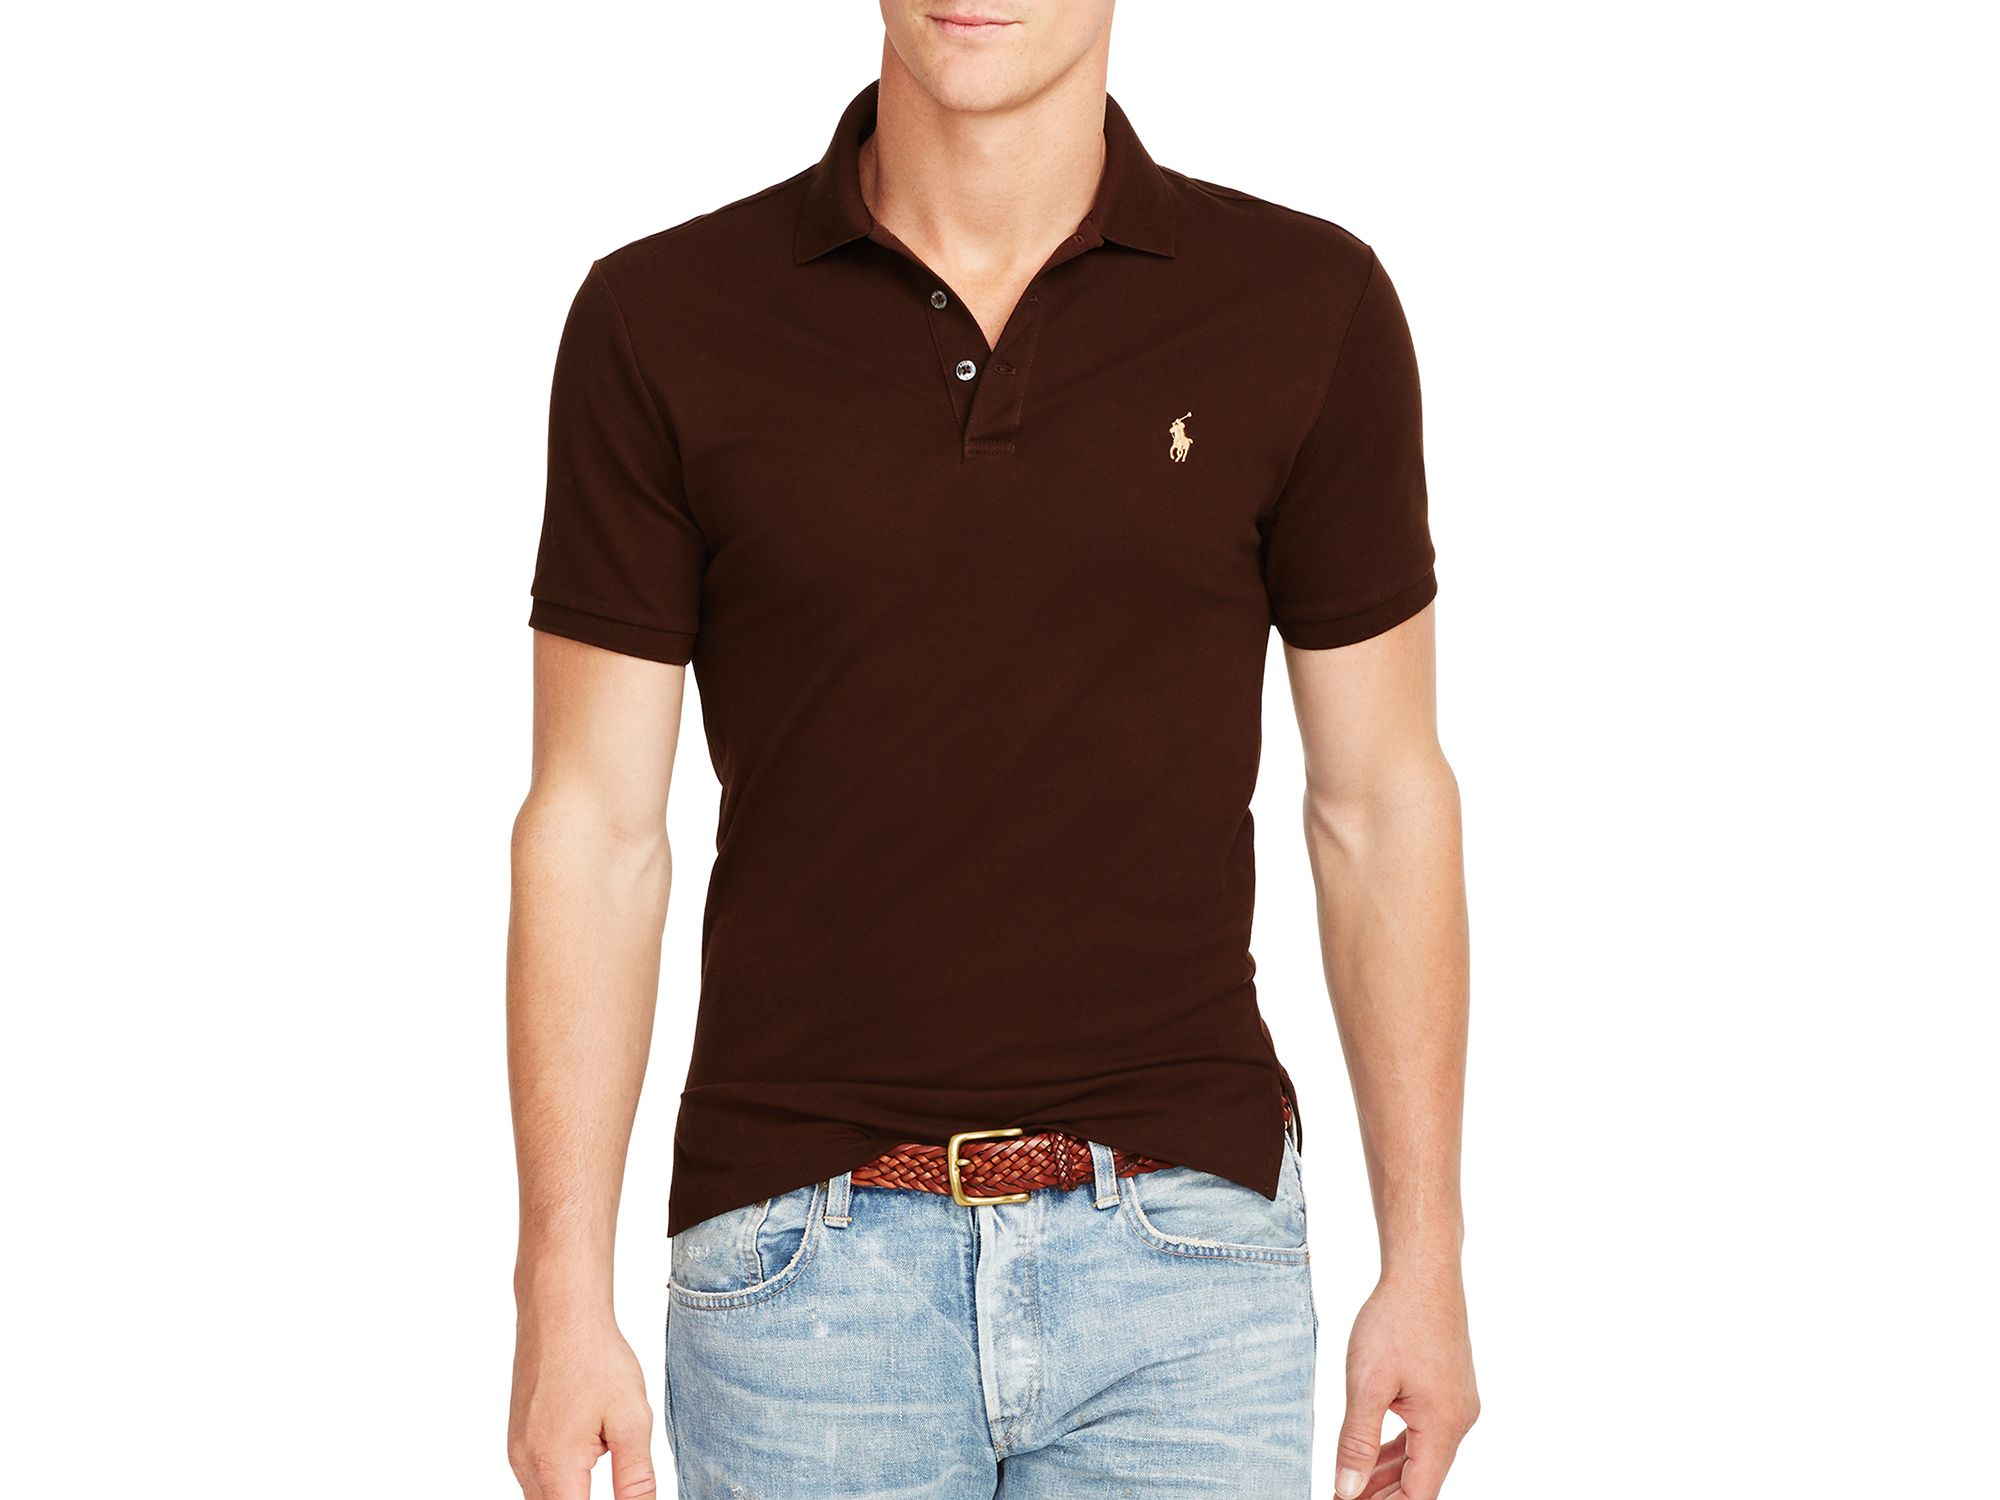 ralph lauren polo stretch mesh slim fit polo shirt in brown for men lyst. Black Bedroom Furniture Sets. Home Design Ideas